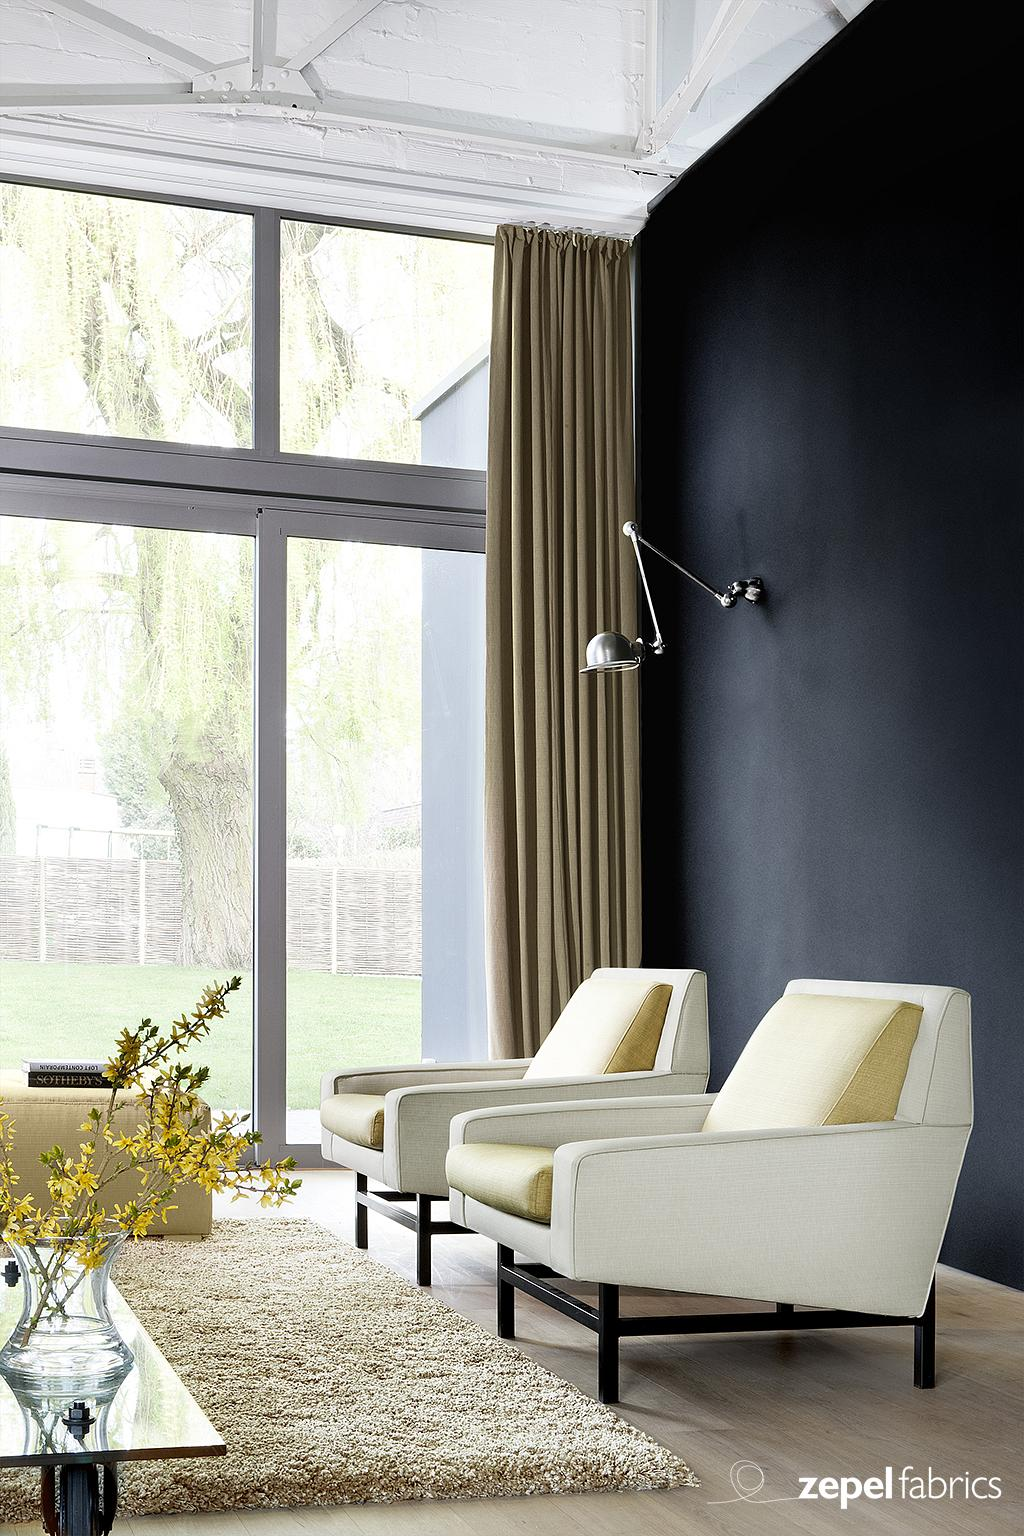 How to finish a room with sheer curtains